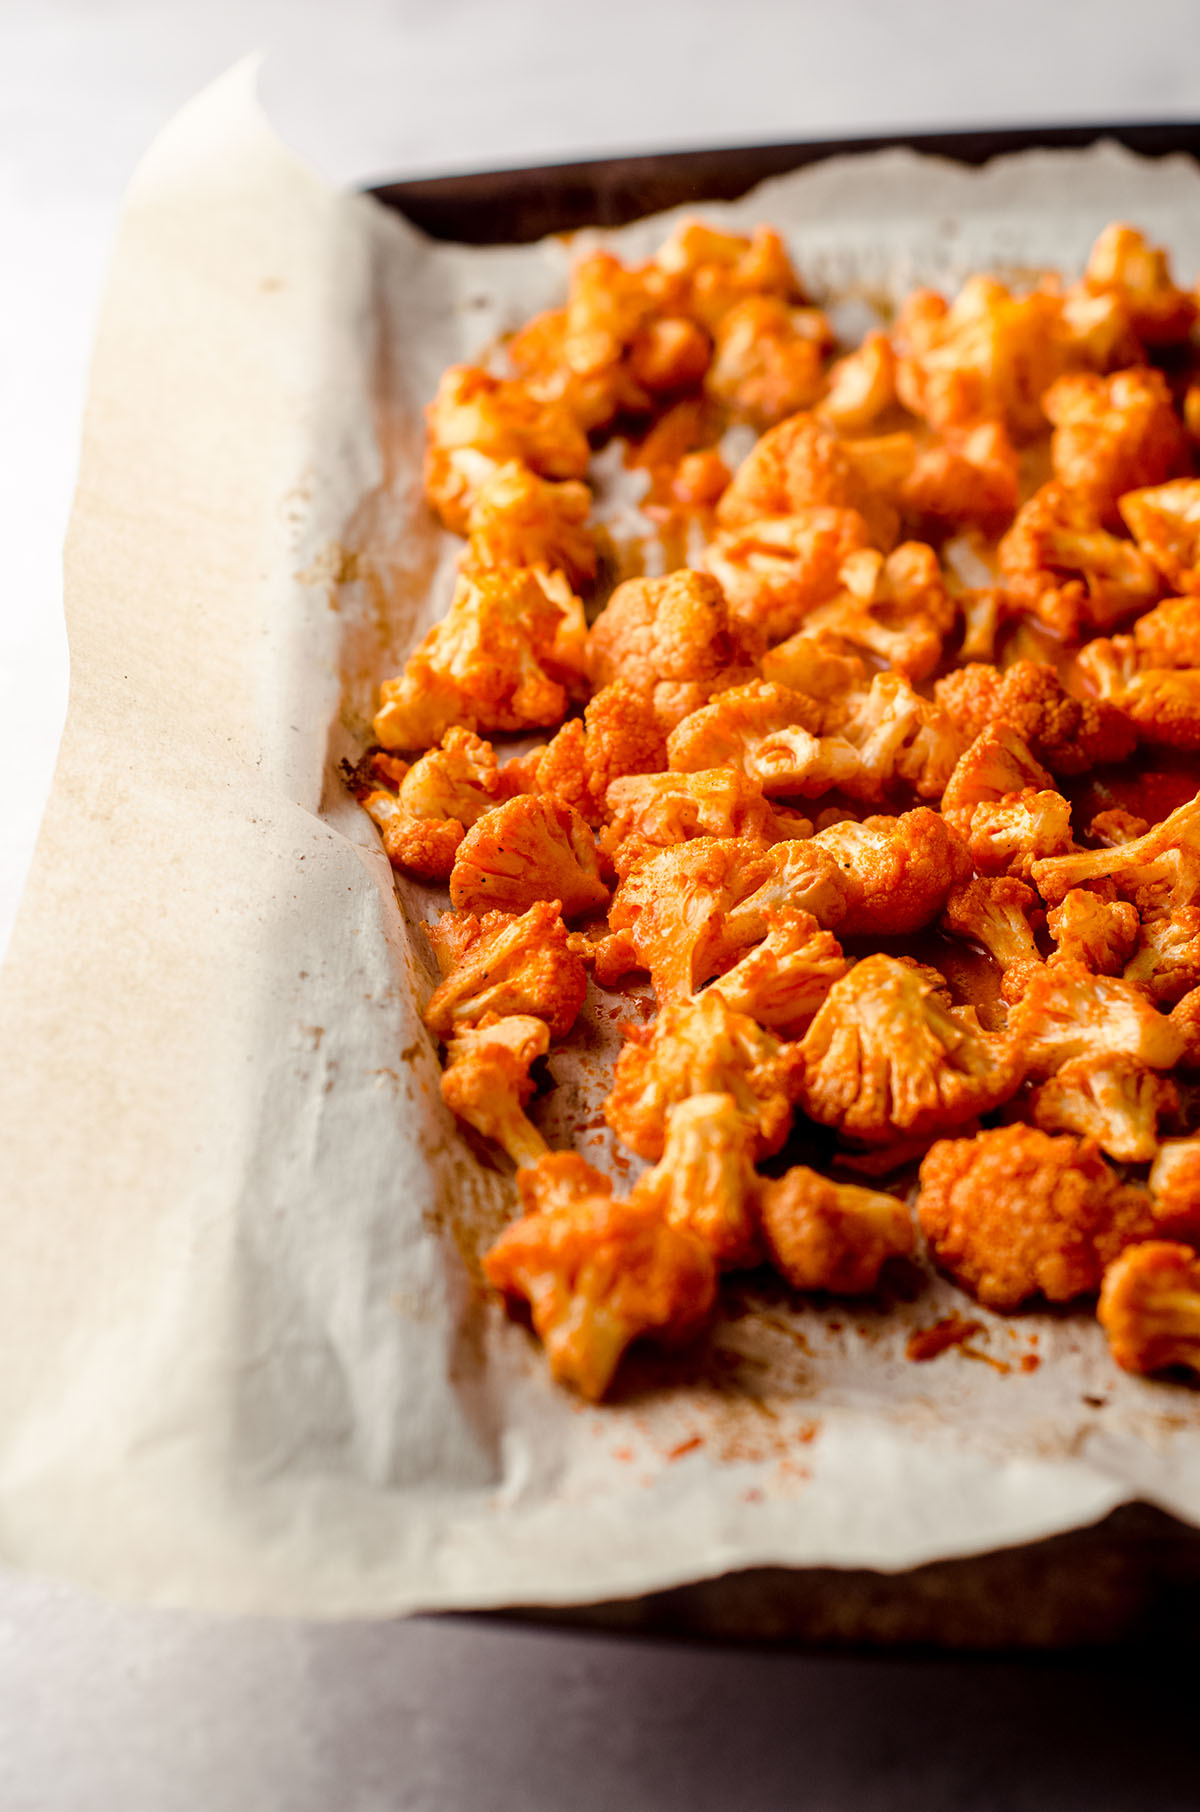 oven baked cauliflower covered in hot sauce to make the filling for buffalo cauliflower tacos